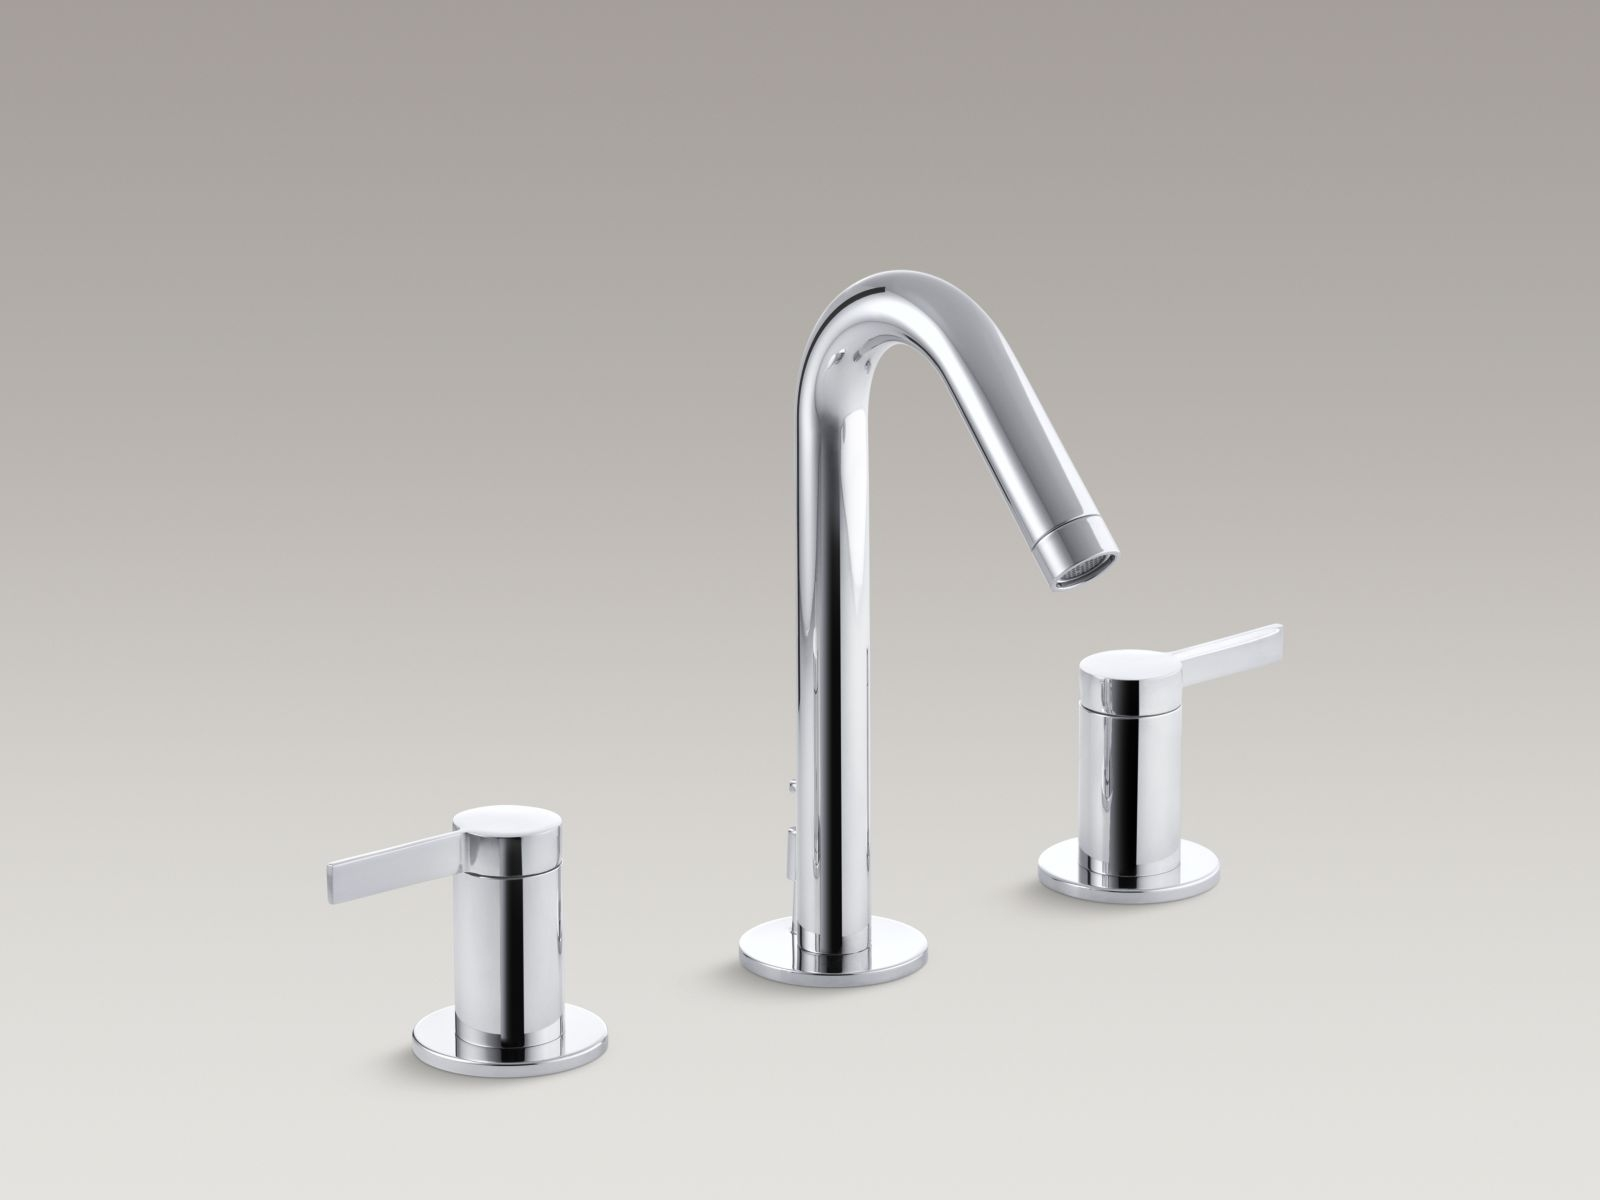 Ideas, kohler memoirs faucet chrome kohler memoirs faucet chrome buyplumbing category wide set bathroom faucet 1600 x 1200  .